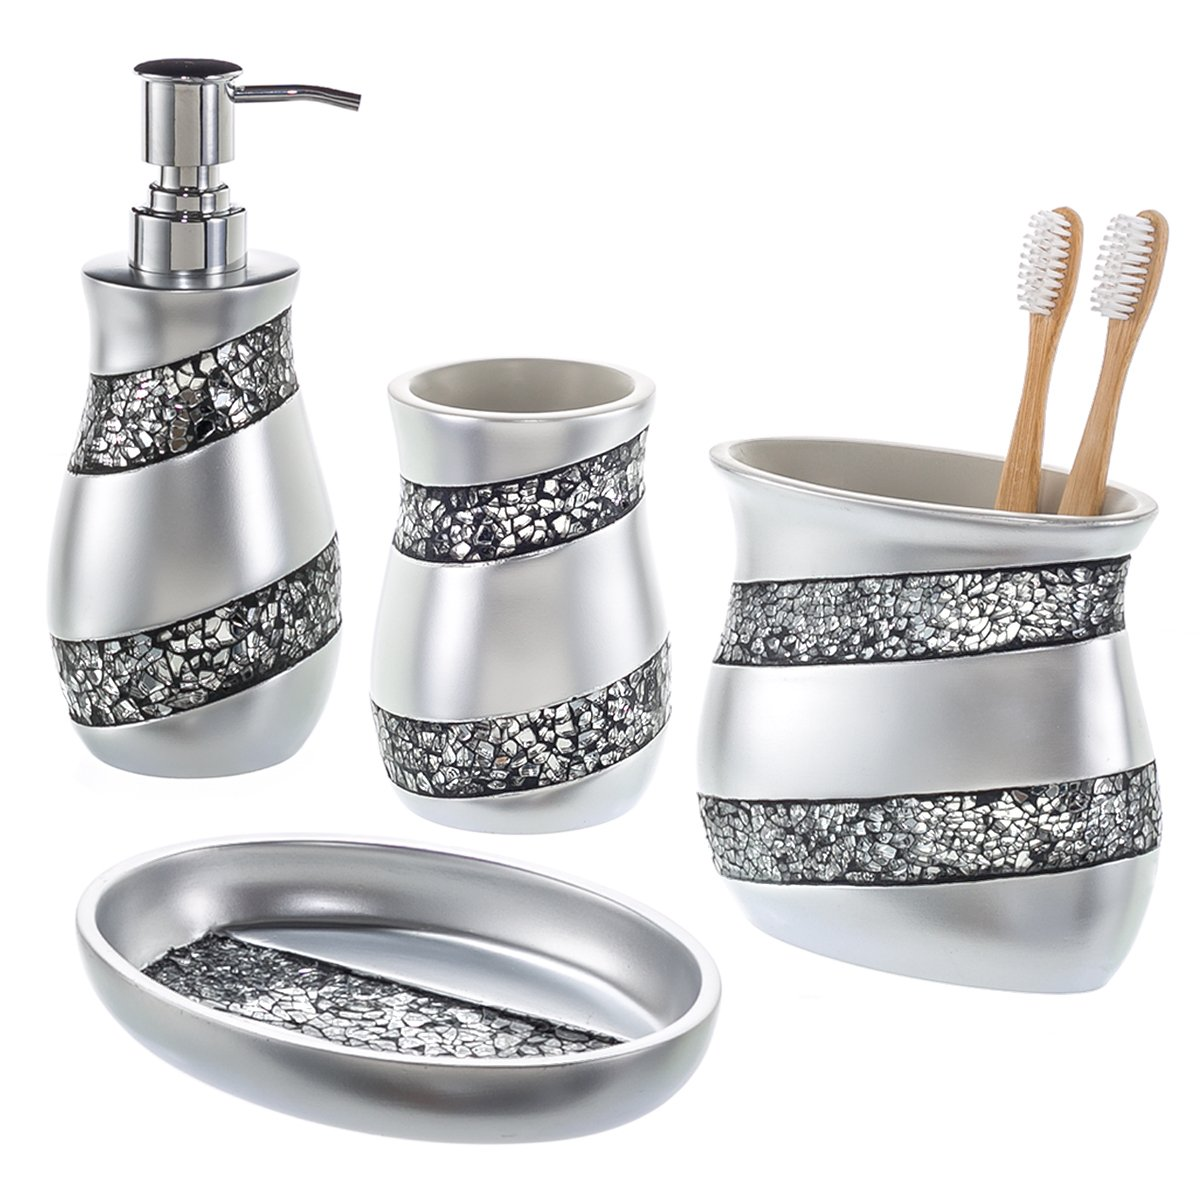 Superbe Amazon.com: Creative Scents Bathroom Accessories Set, 4 Piece Silver Mosaic  Glass Luxury Bathroom Gift Set, Includes Soap Dispenser, Toothbrush Holder,  ...